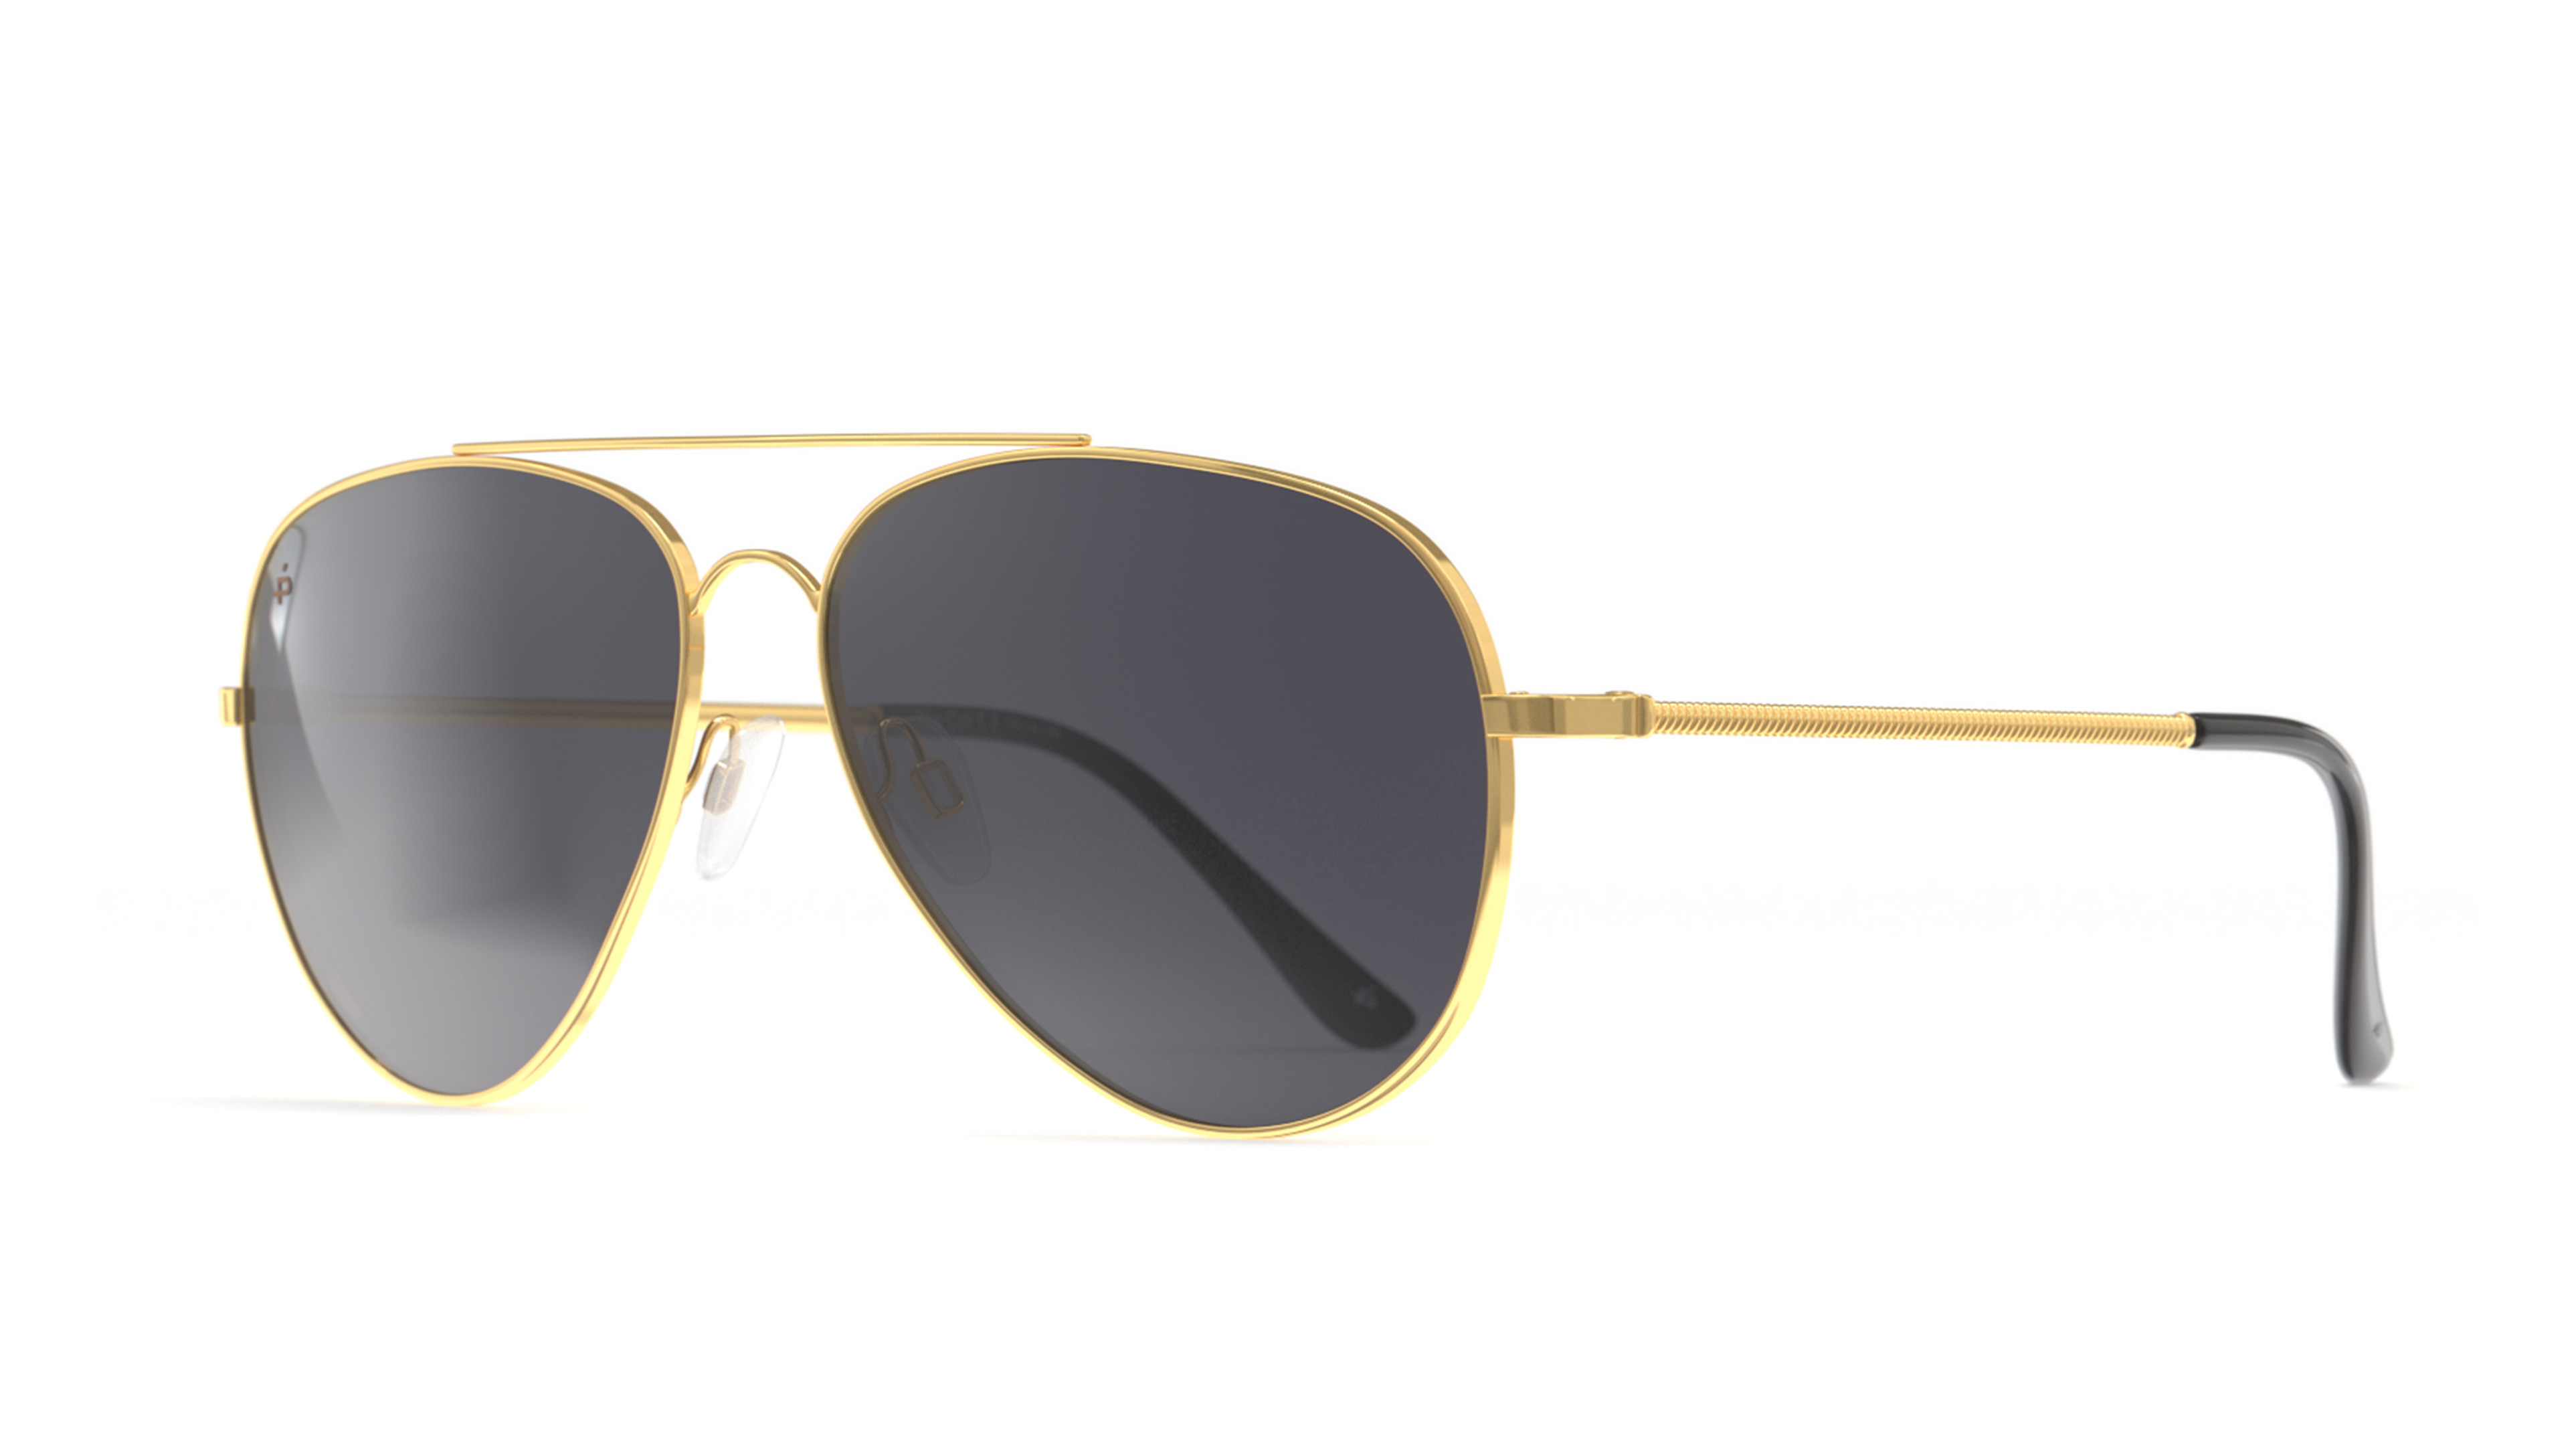 810036101905-angle-prive-revaux-sonnenbrille-prive-revaux-gold-smoke